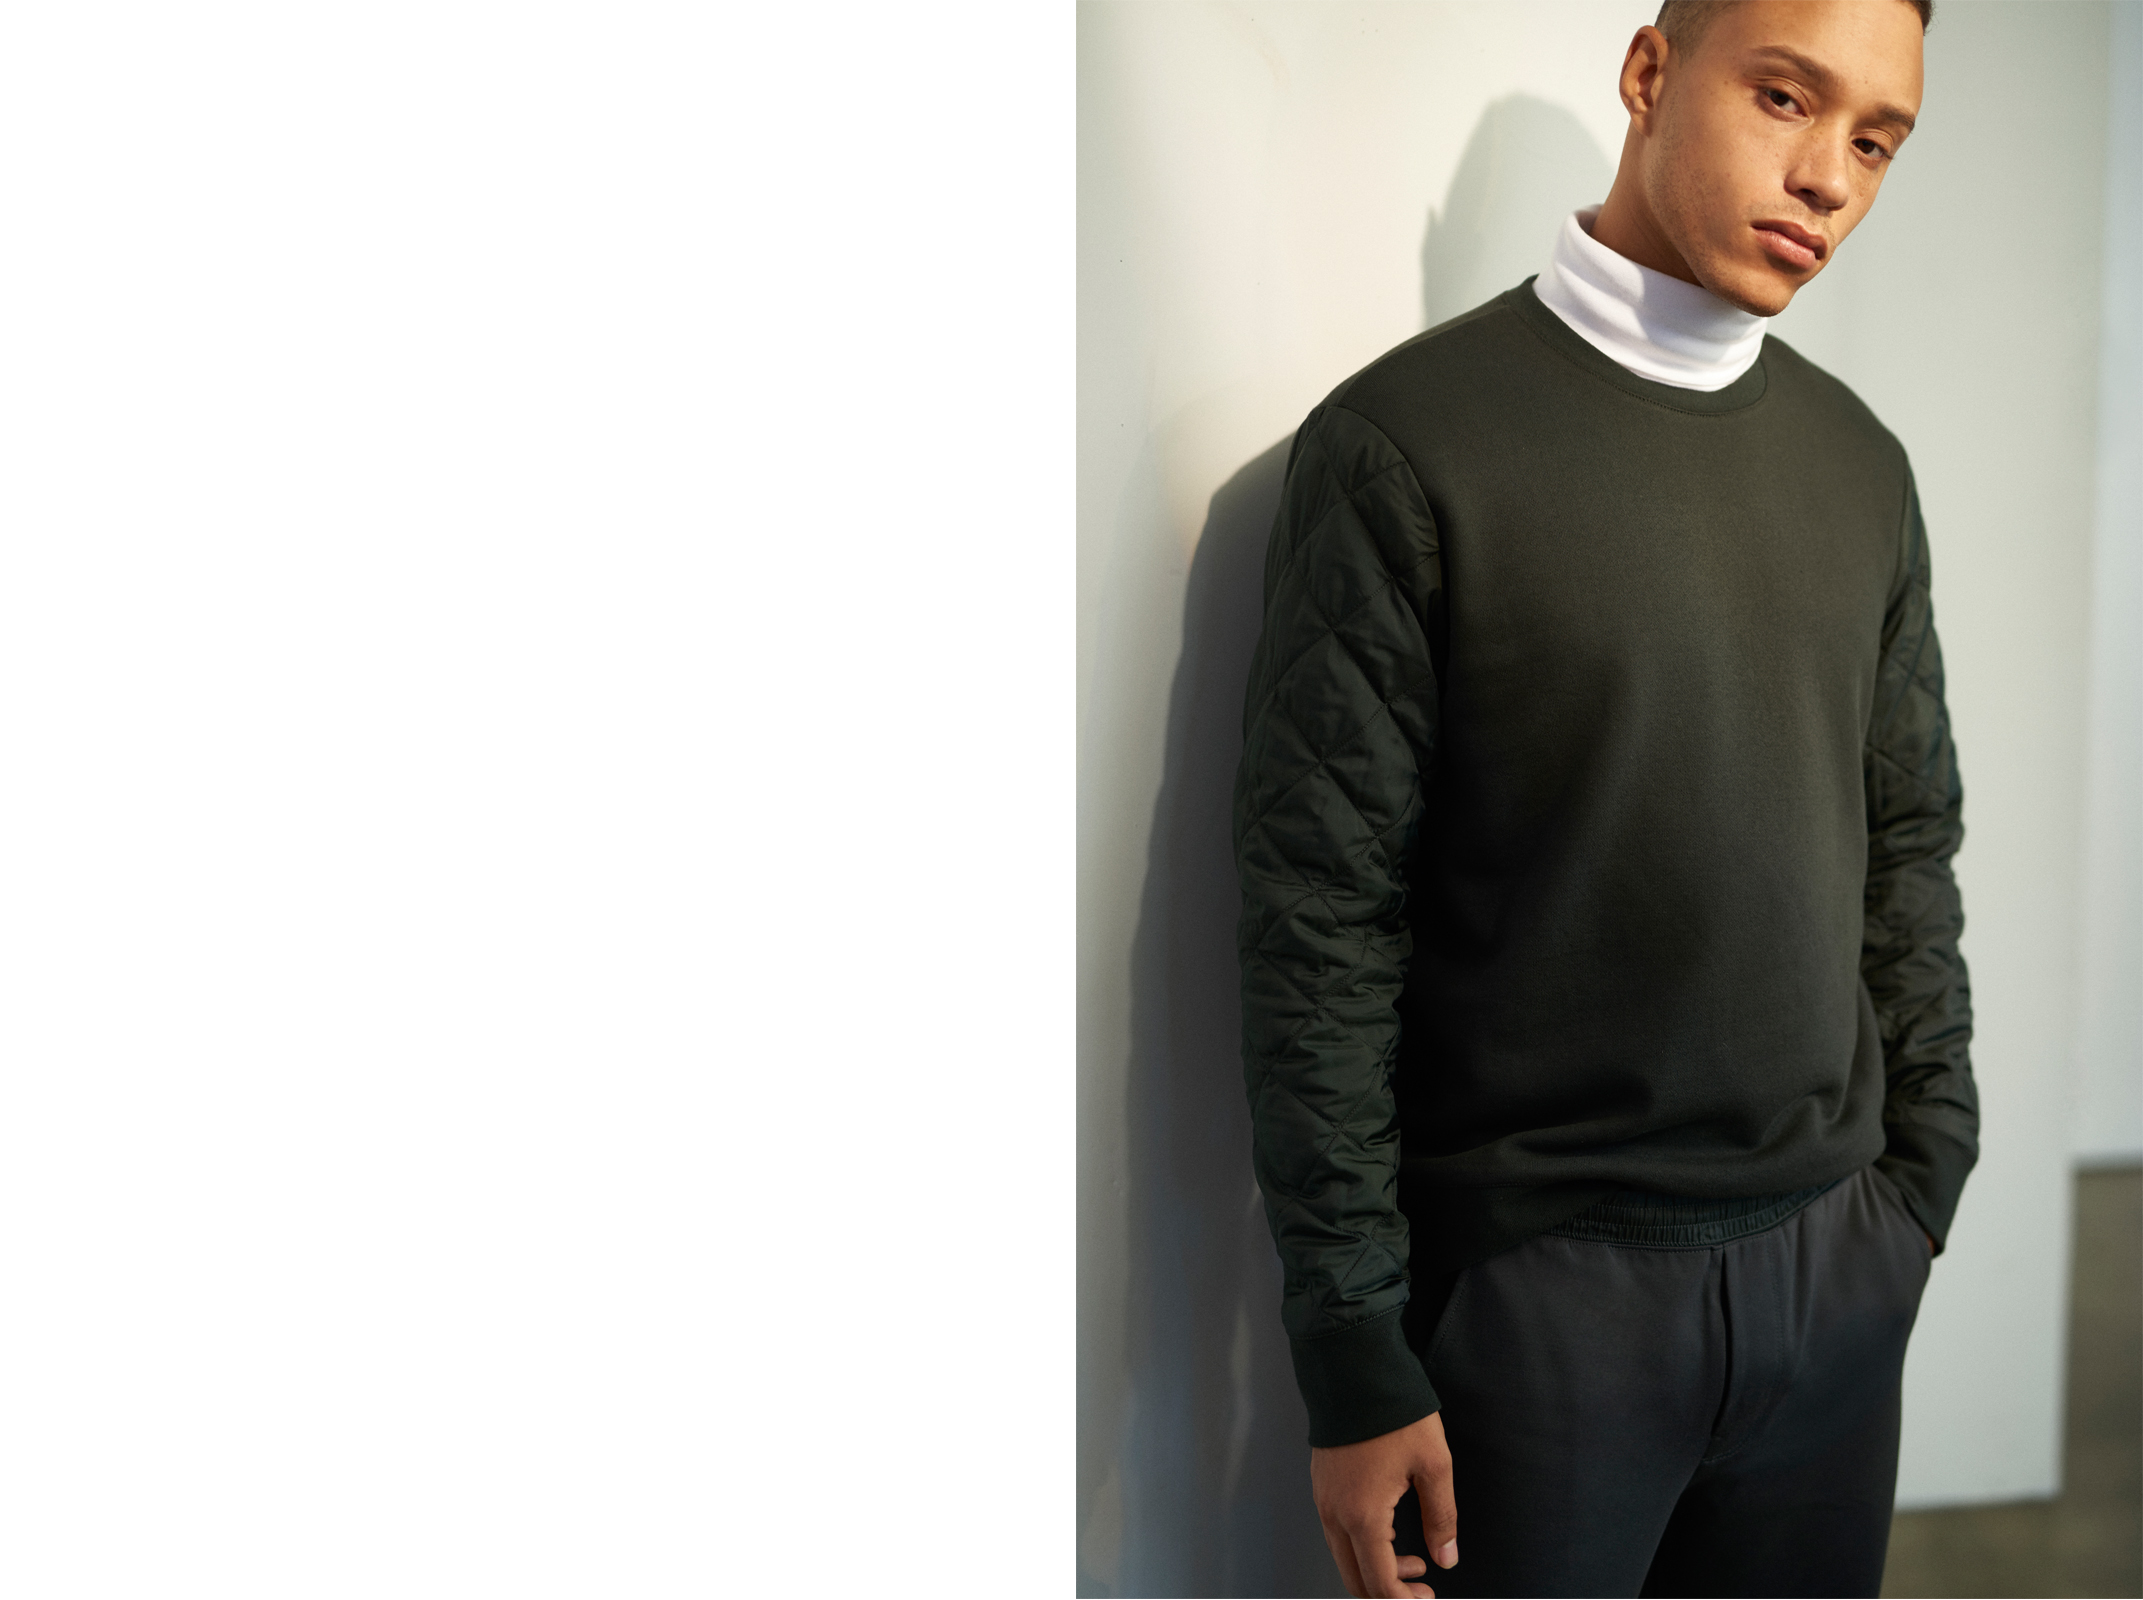 Quilted Sleeve Sweatshirt HK$1,290, Coverlock Turtleneck HK$990, Paneled Sweatpants HK$1,490